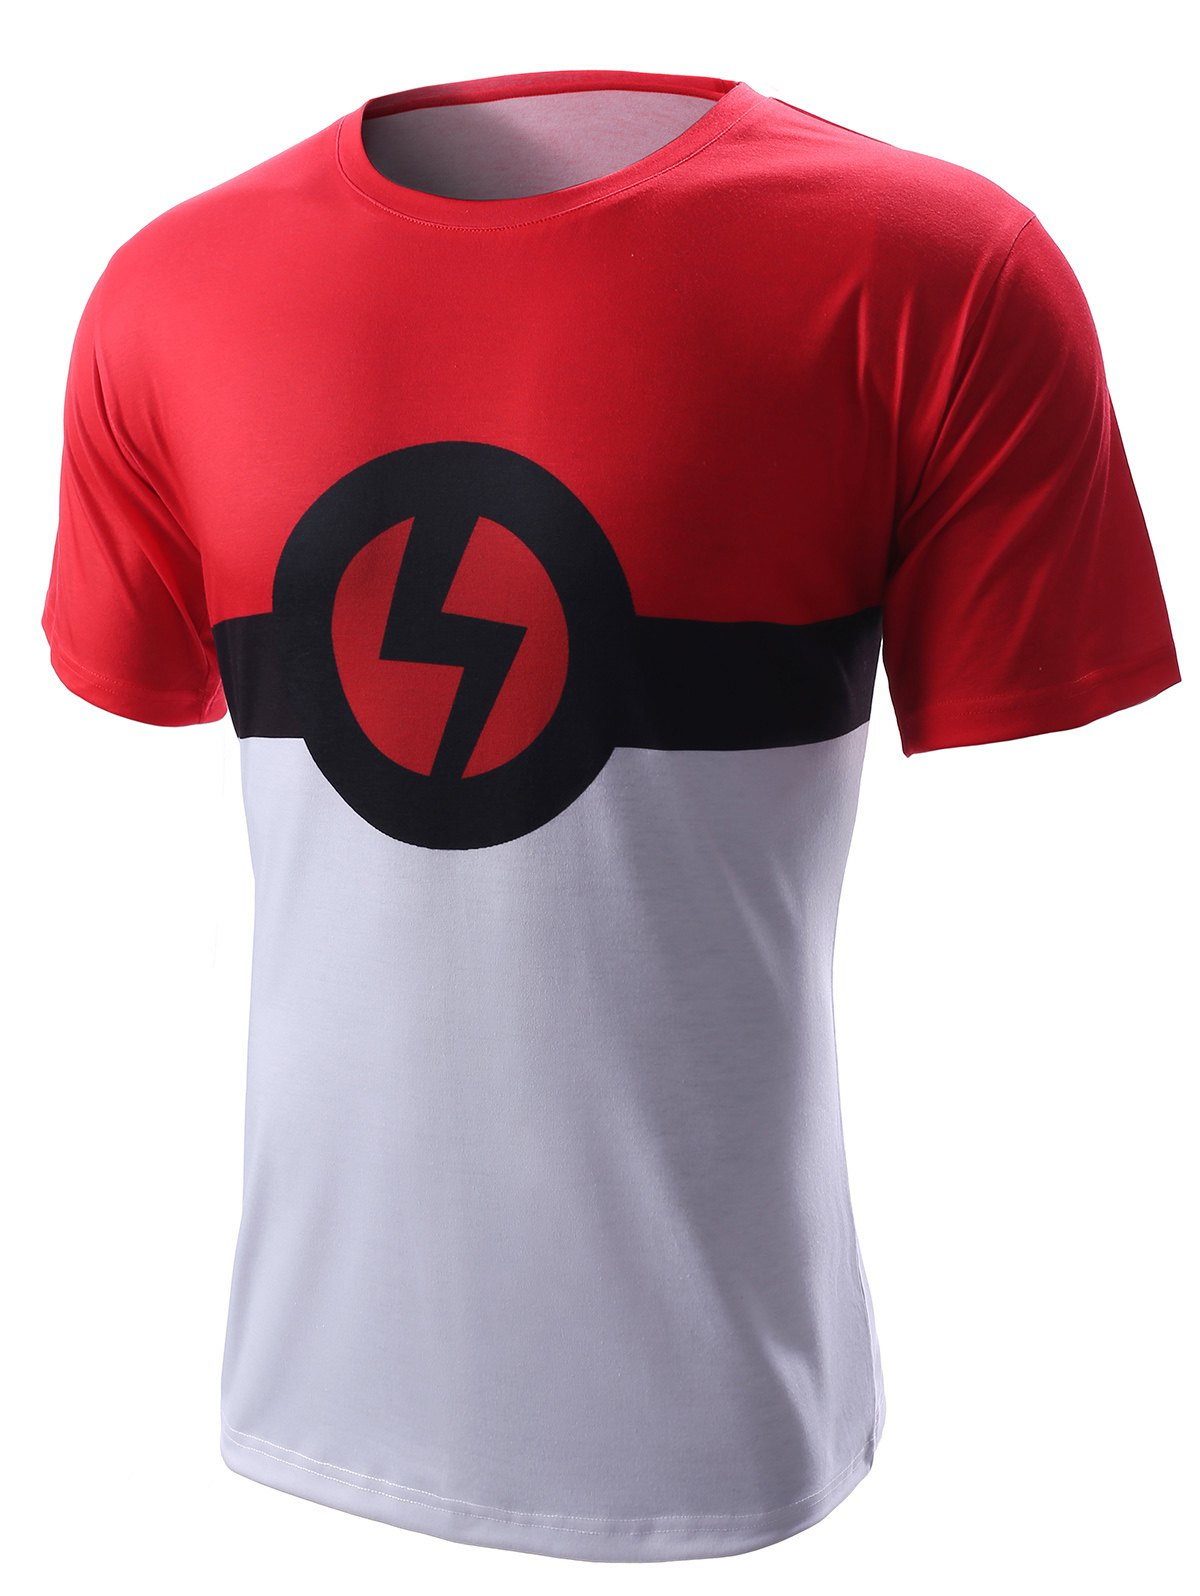 Round Neck Lightning Sign Design Short Sleeve Men's T-Shirt - COLORMIX XL